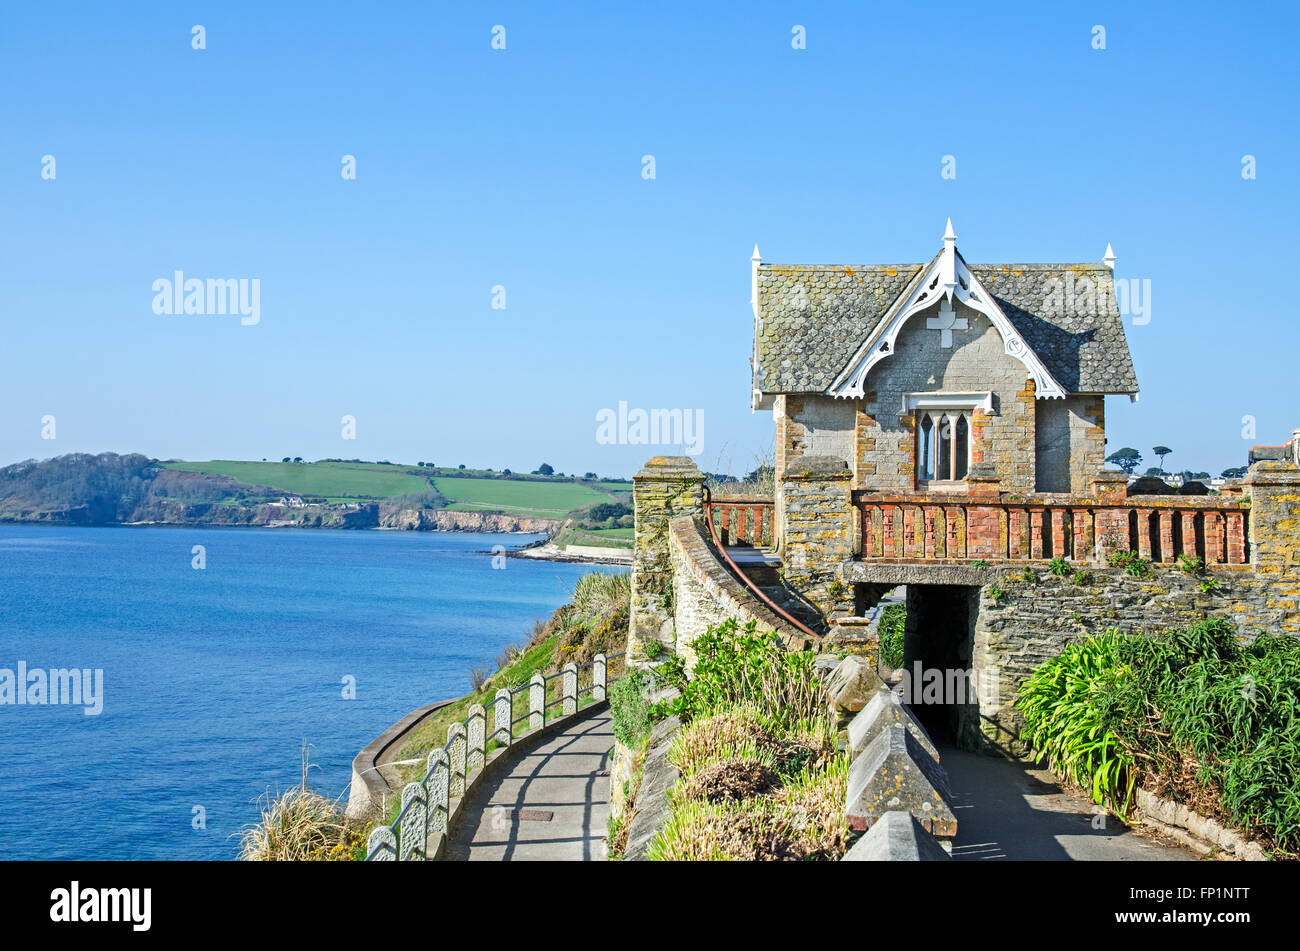 The old summer house on Cliff road in Falmouth, Cornwall, UK - Stock Image